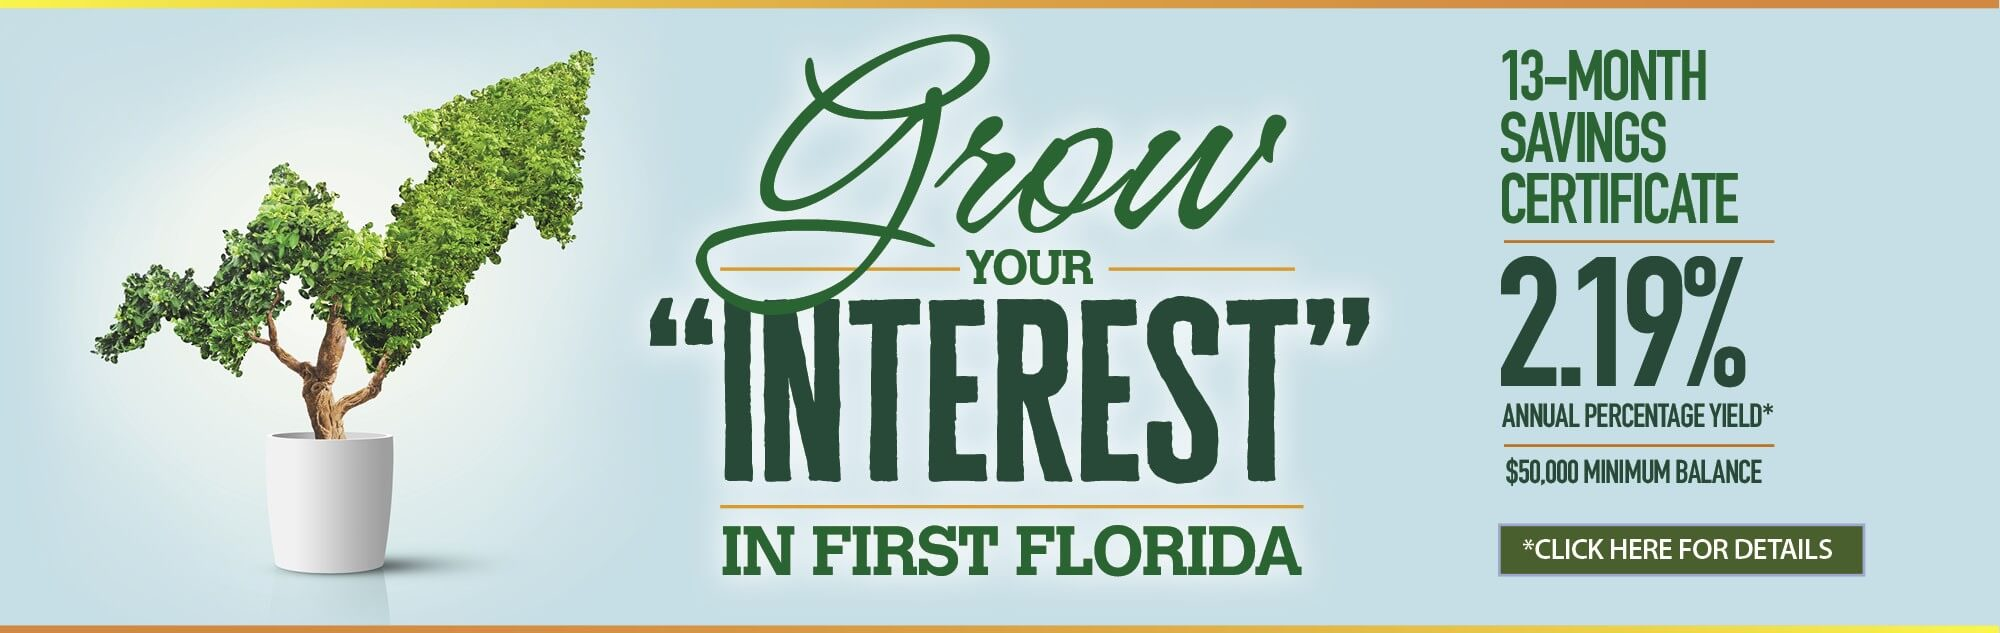 Grow your interest in First Florida 13-Month Savings Certificate. 2.19% annual percentage yield. click for details